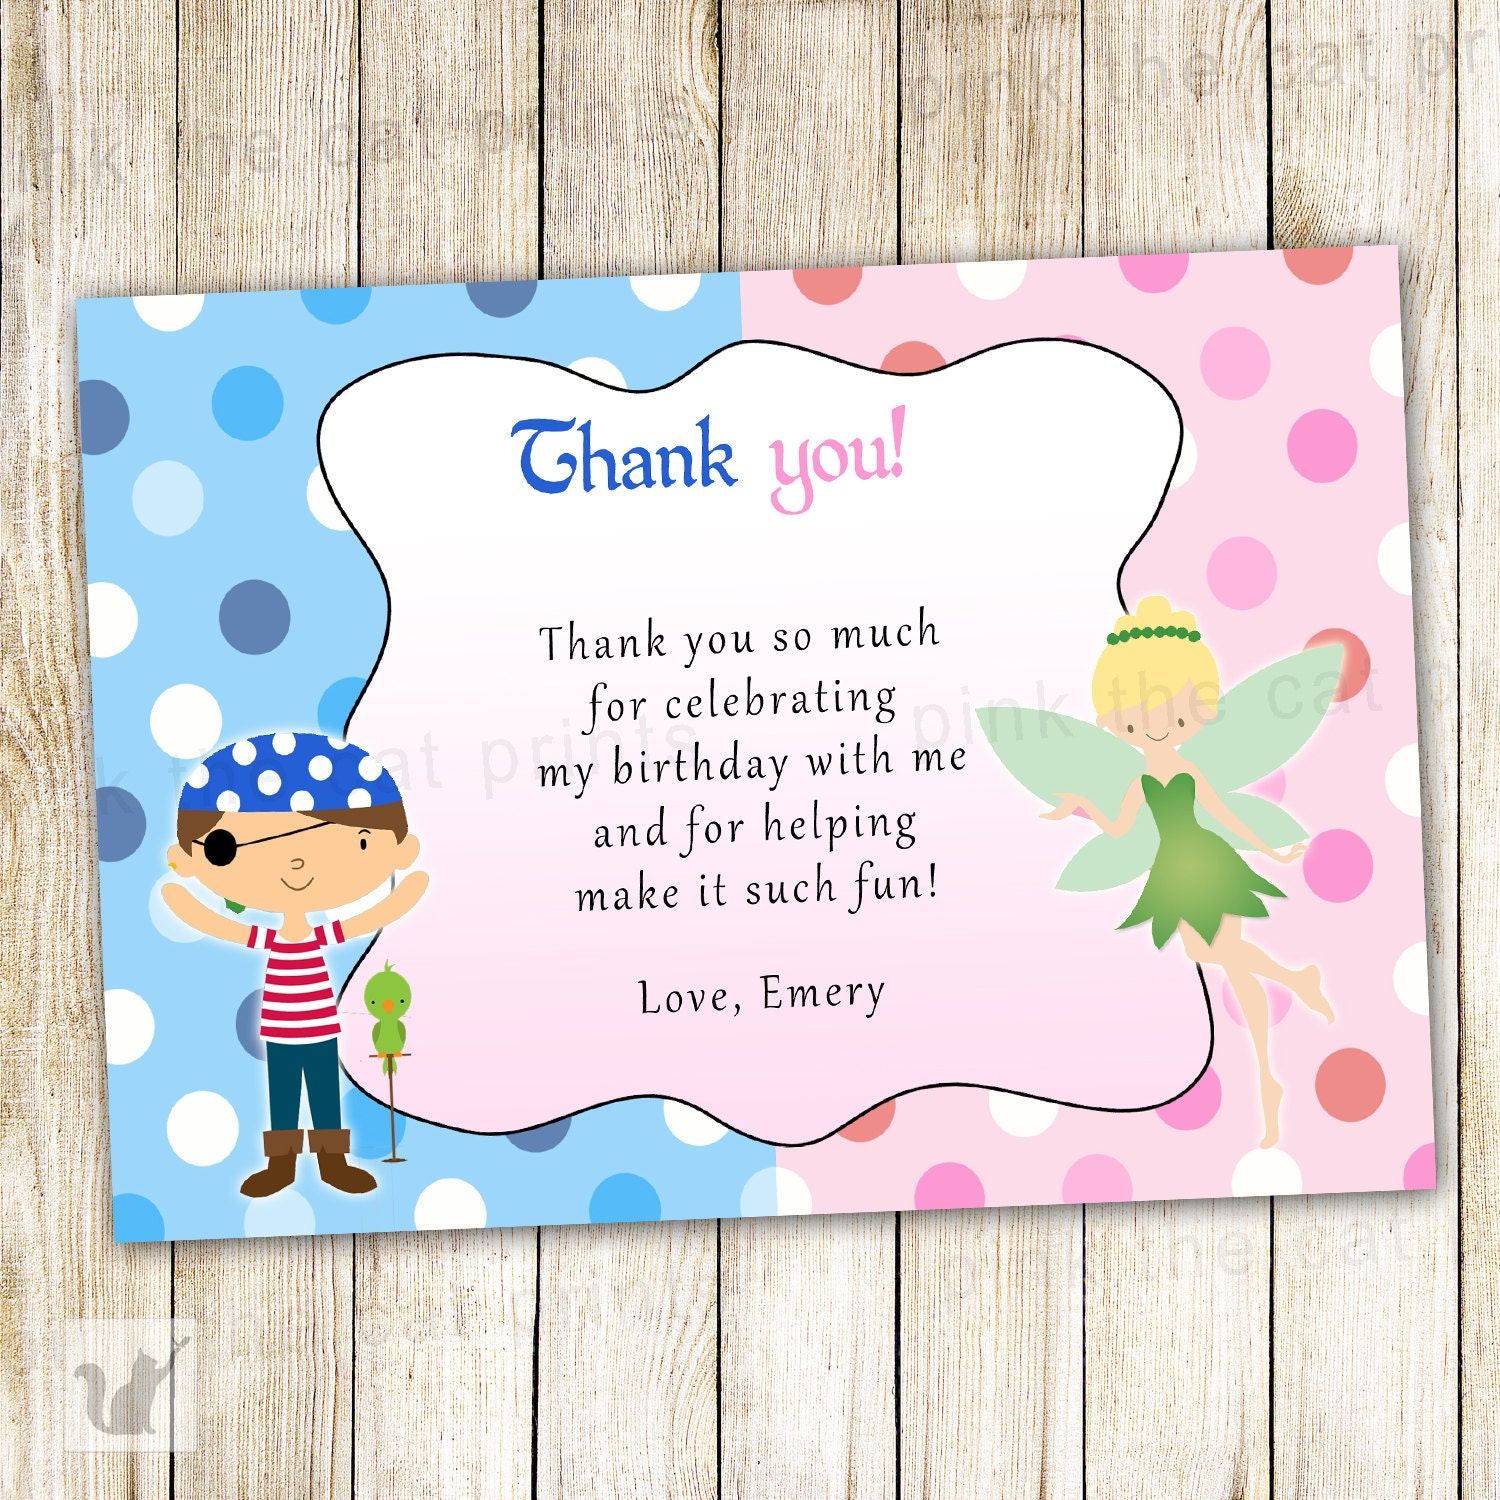 Printable Pirate Birthday Invitations is beautiful invitation layout